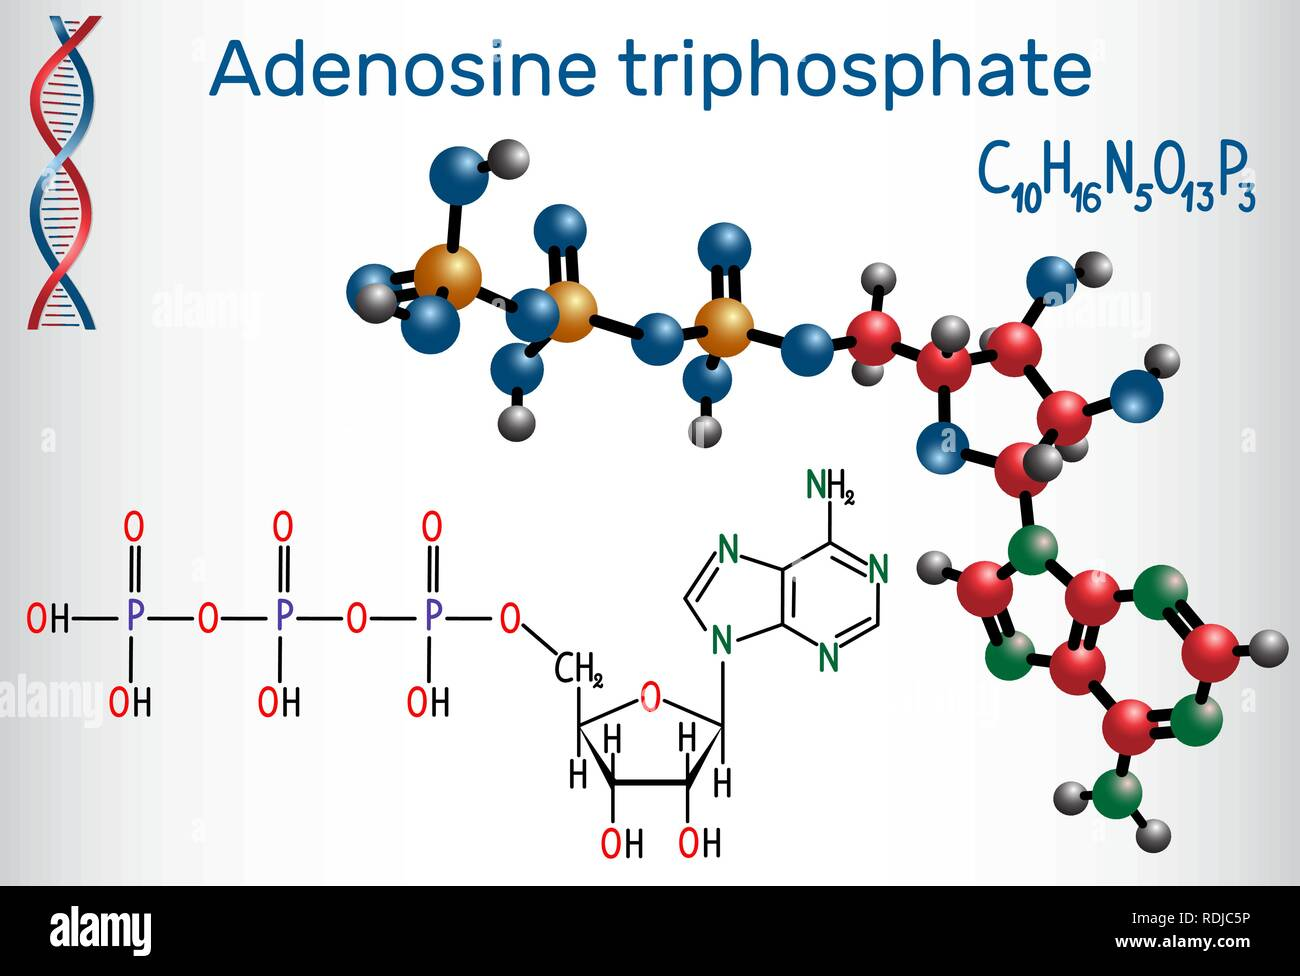 Adenosine triphosphate (ATP) molecule, is intracellular energy transfer and required in the synthesis of RNA. Structural chemical formula and molecule - Stock Image